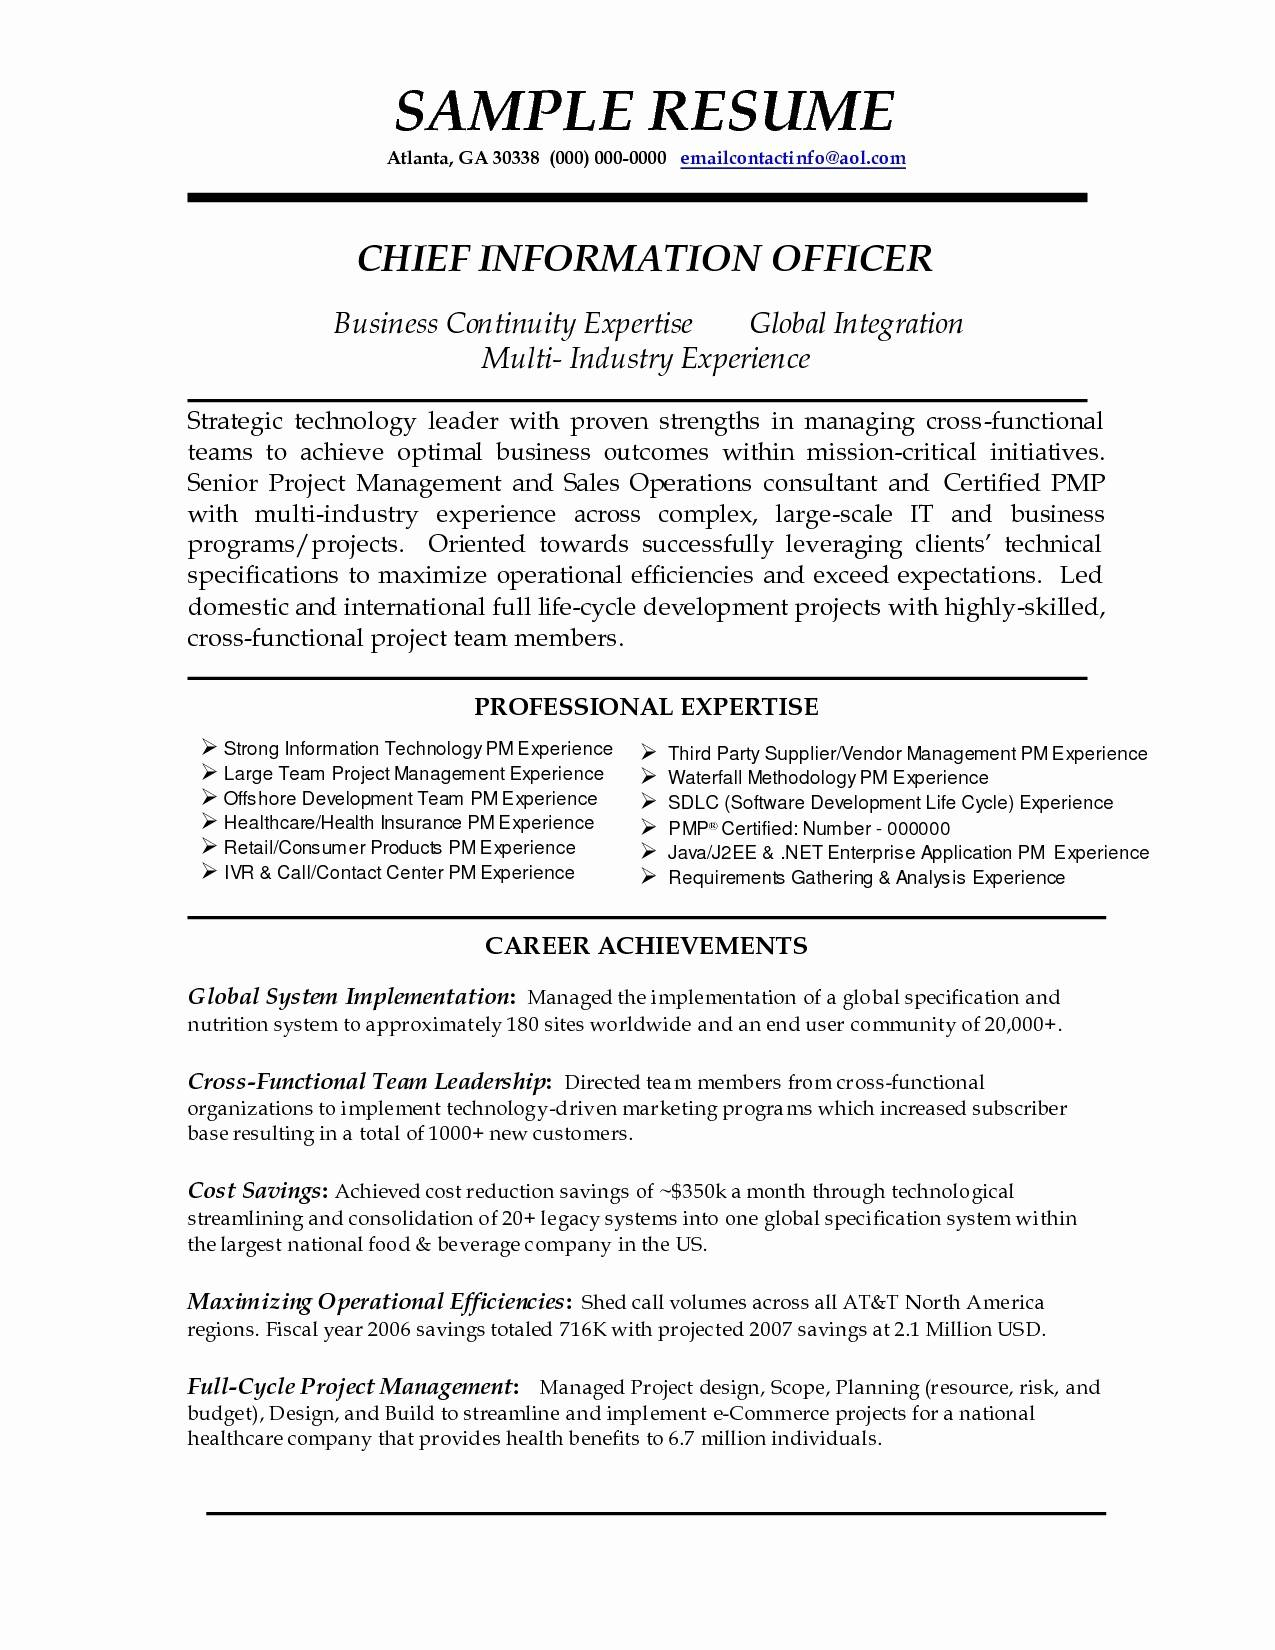 A Guidance To Write A Good Resume Summary Statement